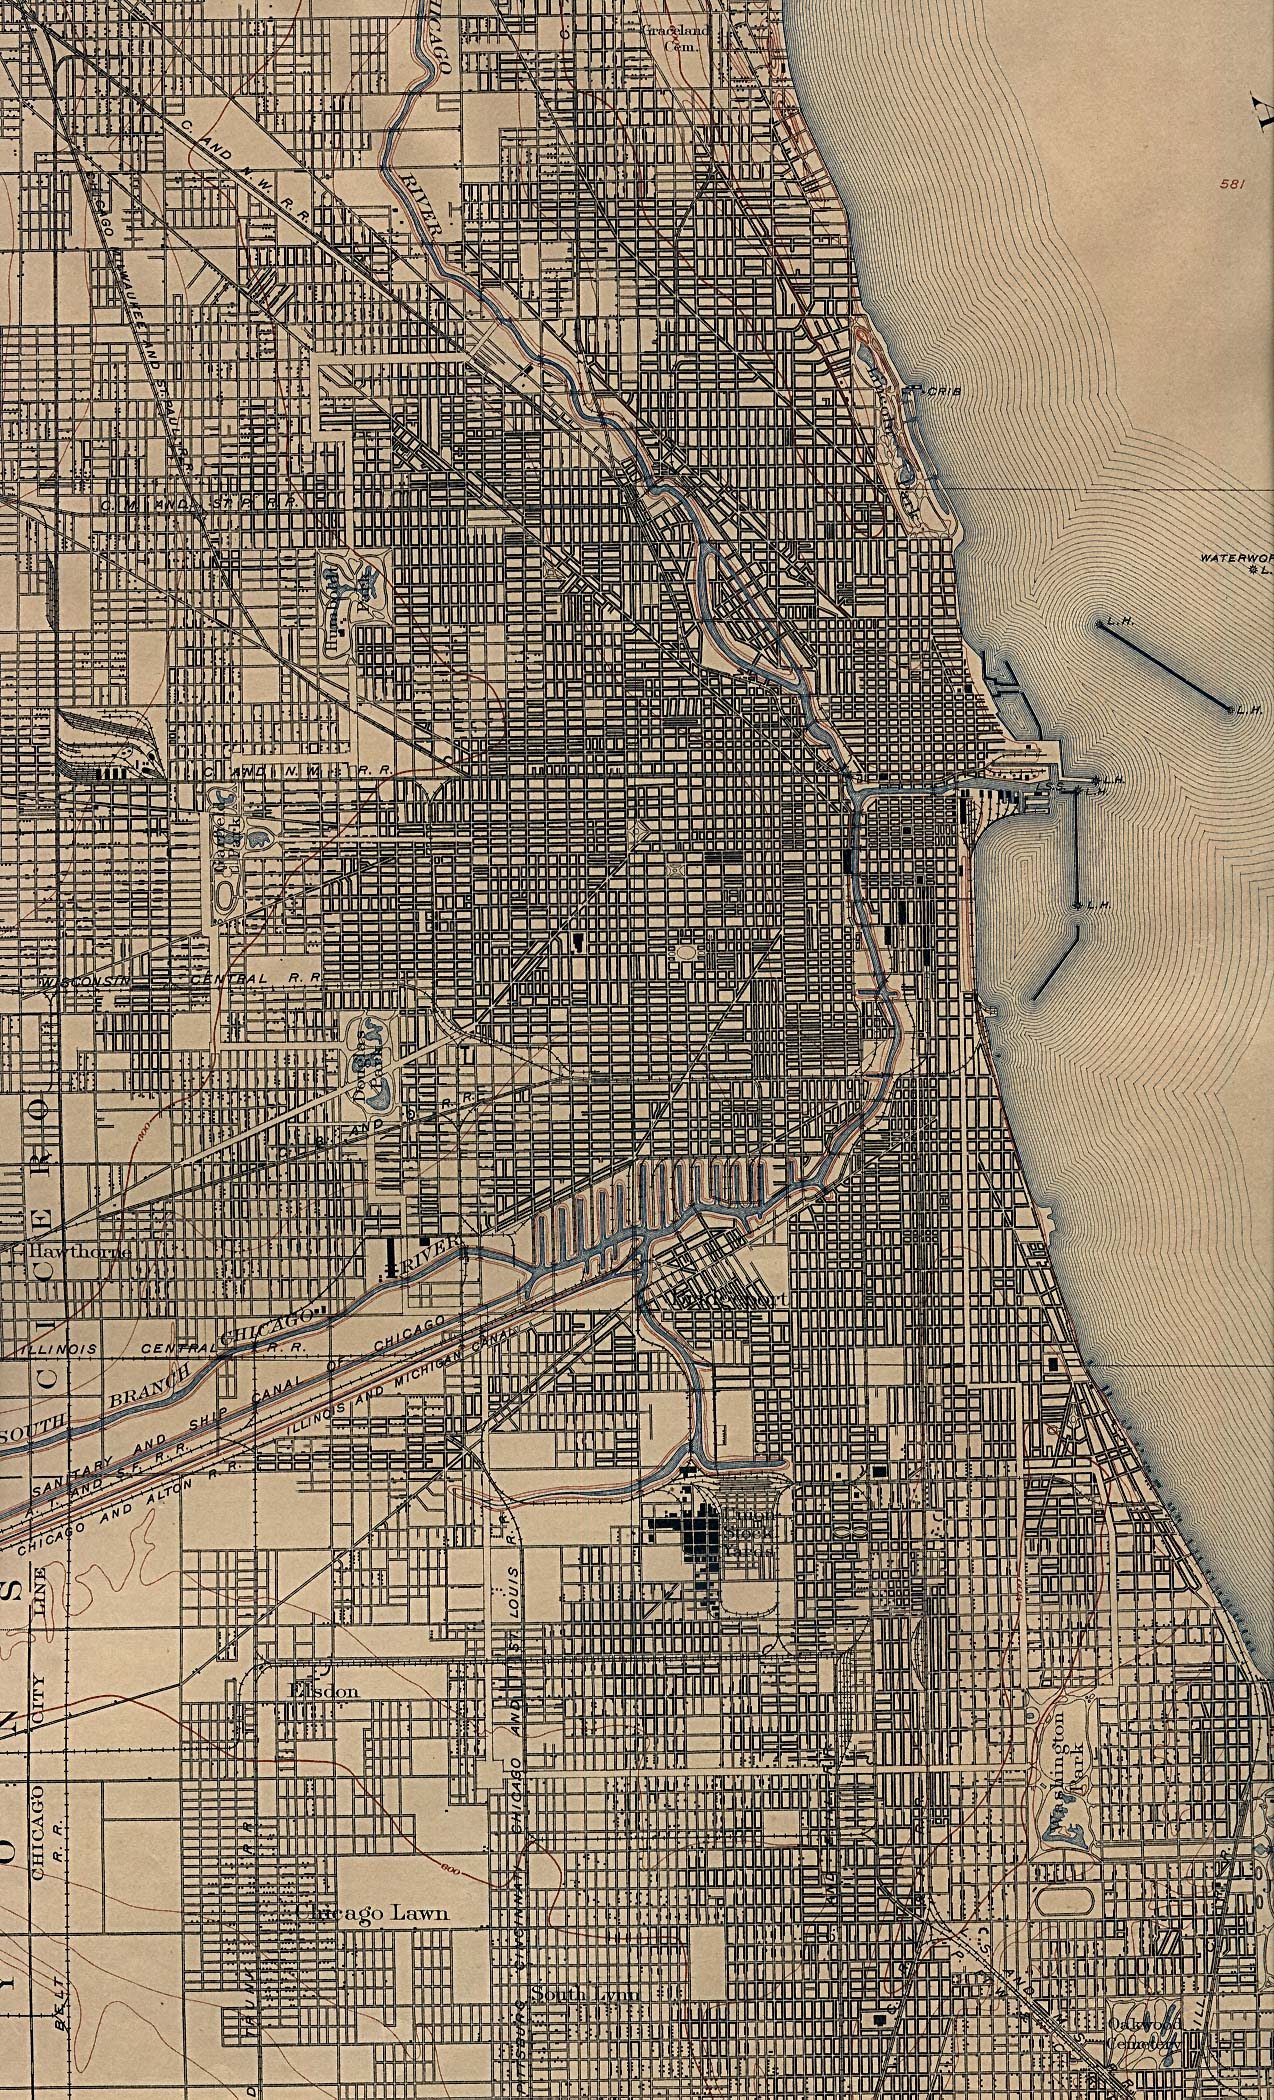 Cook County Illinois Maps And Gazetteers - Chicago illinois map of suburbs